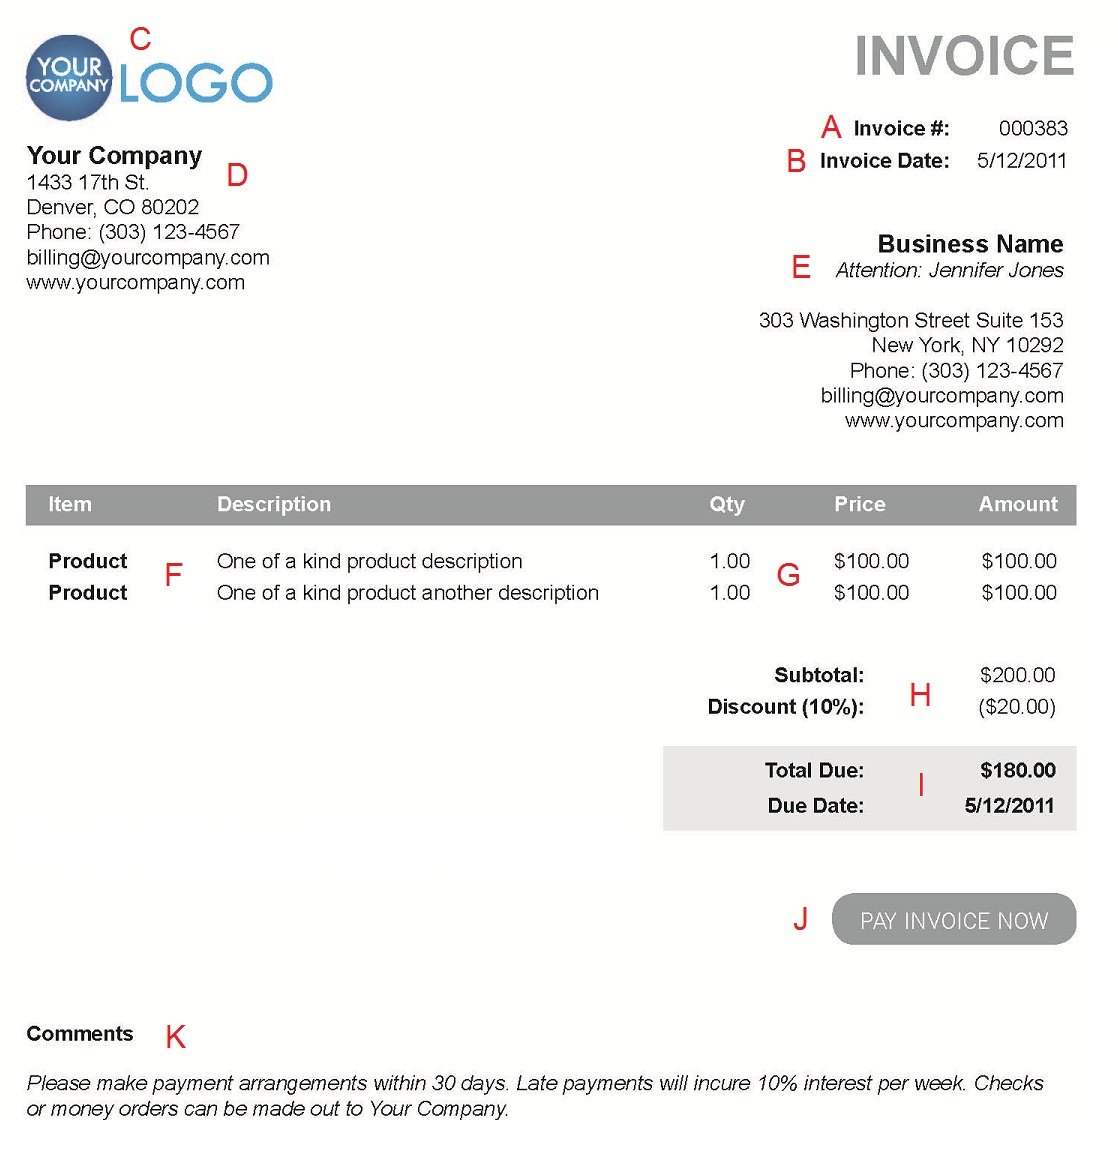 Gpwaus  Splendid The  Different Sections Of An Electronic Payment Invoice With Great A  With Delectable Non Vat Registered Invoice Also Invoice Format Download In Addition Confidential Invoice Discounting And Invoice Factoring Brokers As Well As What Is On An Invoice Additionally Edit Invoice From Paysimplecom With Gpwaus  Great The  Different Sections Of An Electronic Payment Invoice With Delectable A  And Splendid Non Vat Registered Invoice Also Invoice Format Download In Addition Confidential Invoice Discounting From Paysimplecom